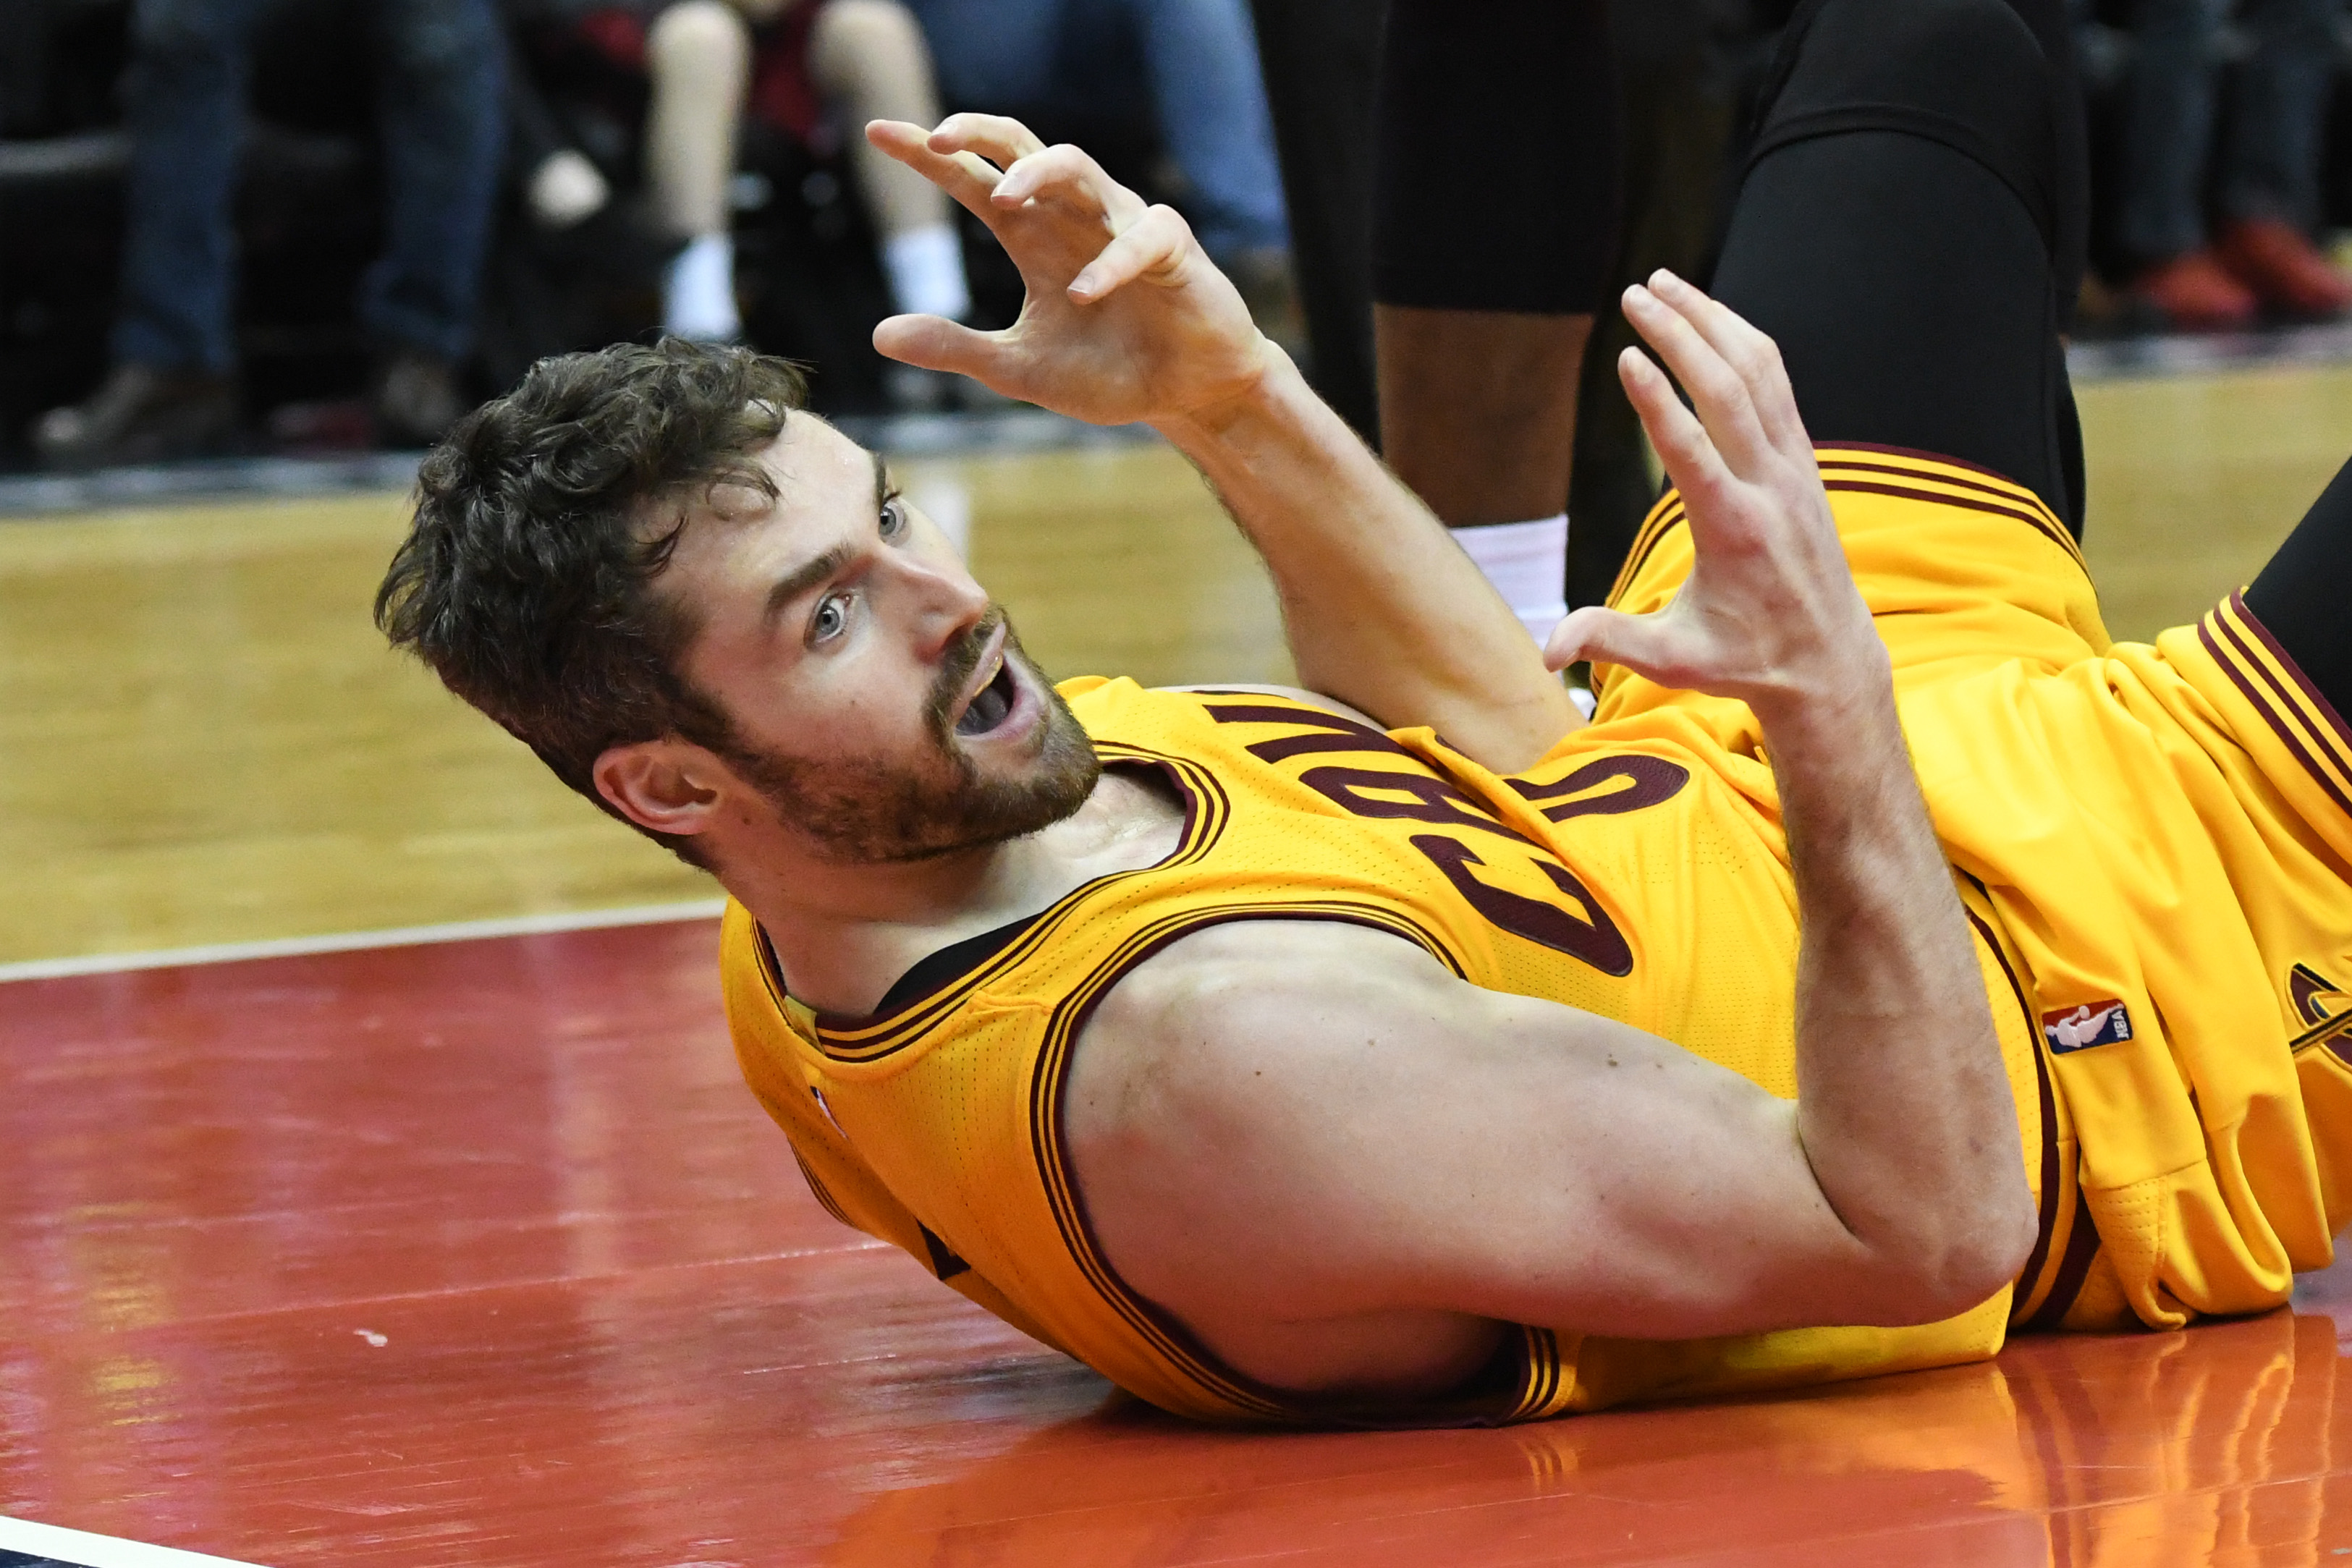 Feb 6, 2017; Washington, DC, USA; Cleveland Cavaliers forward Kevin Love (0) reacts after being called for a foul during the overtime against the Washington Wizards at Verizon Center. Cleveland Cavaliers defeated Washington Wizards 140-135 in overtime. Mandatory Credit: Tommy Gilligan-USA TODAY Sports